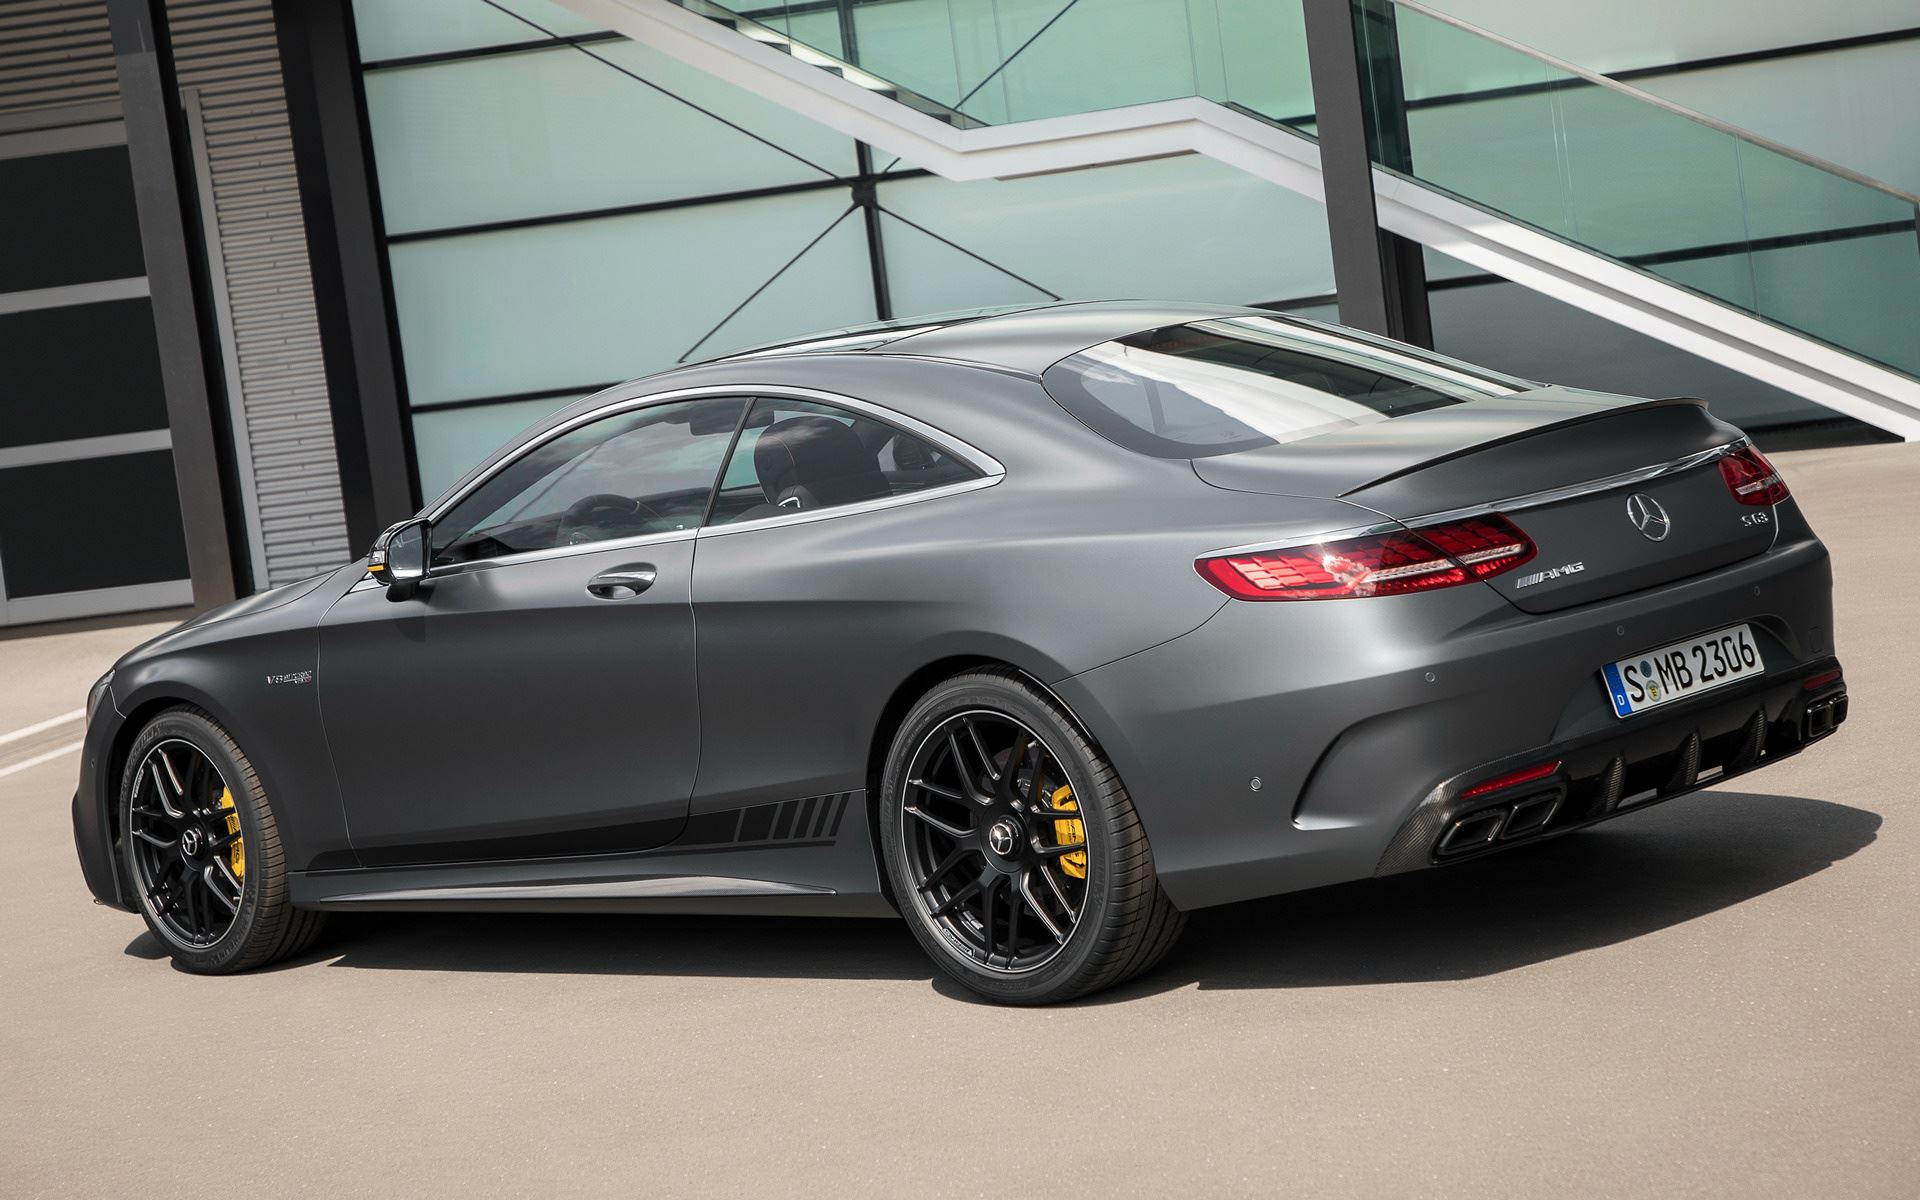 Mercedes Amg S63 Coupe Yellow Night Edition 4 Zero2turbo